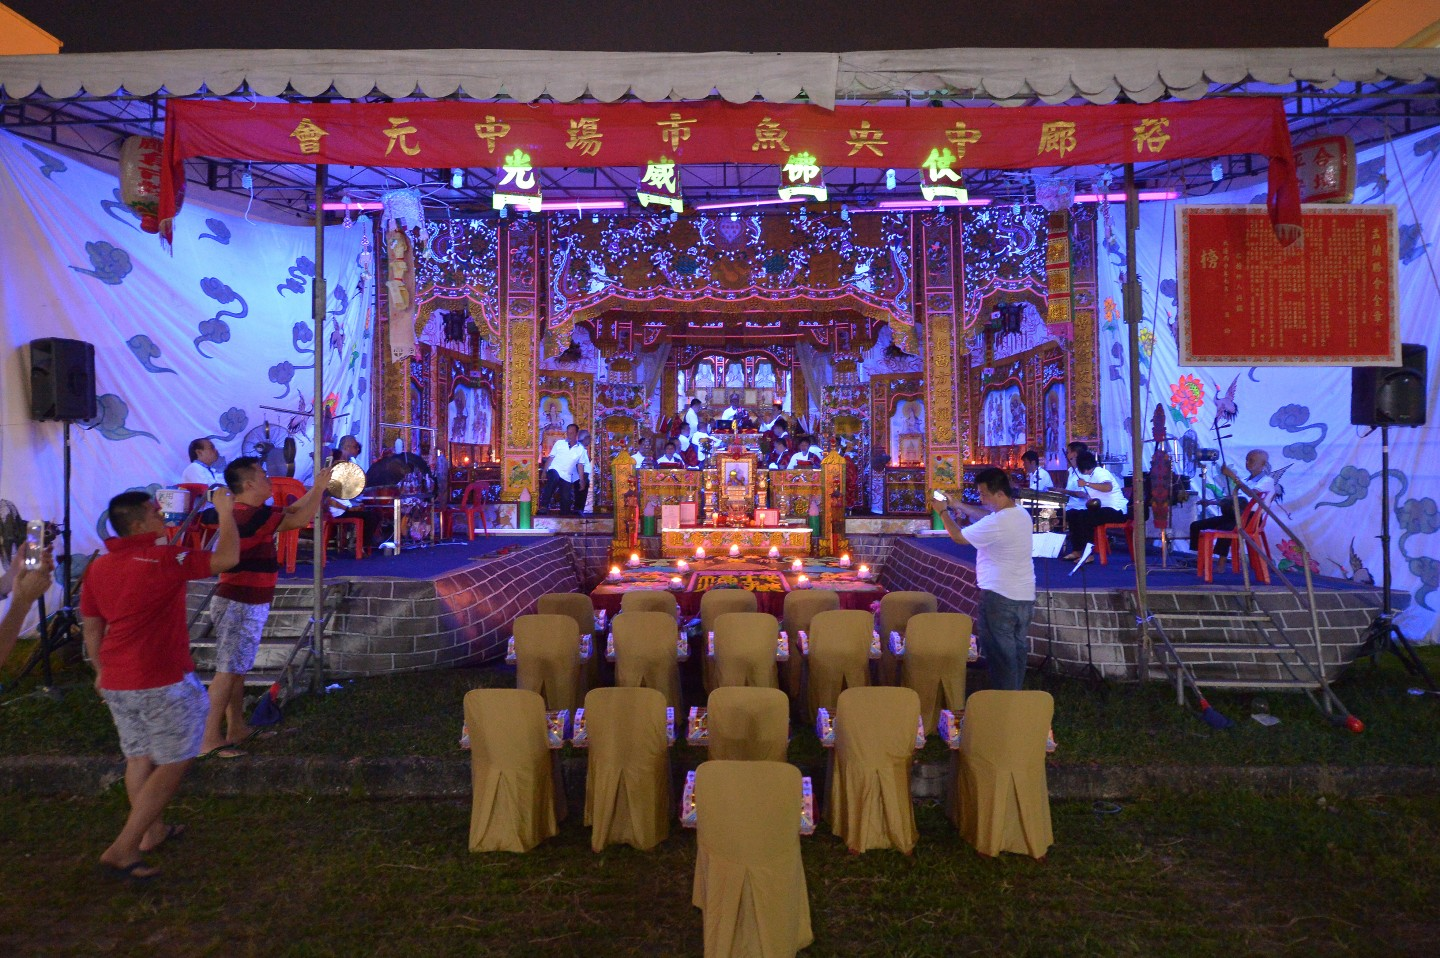 Prayers and rituals are conducted on stage, behind a feast that has been laid for the spirits during the Hungry Ghost Festival at Jurong Fishery Port on 18 August 2016. Food offerings are seen as a way of appeasing wandering spirits, while prayers help relieve them of suffering. Seats near the stage have been left empty for the spirits. (SPH)